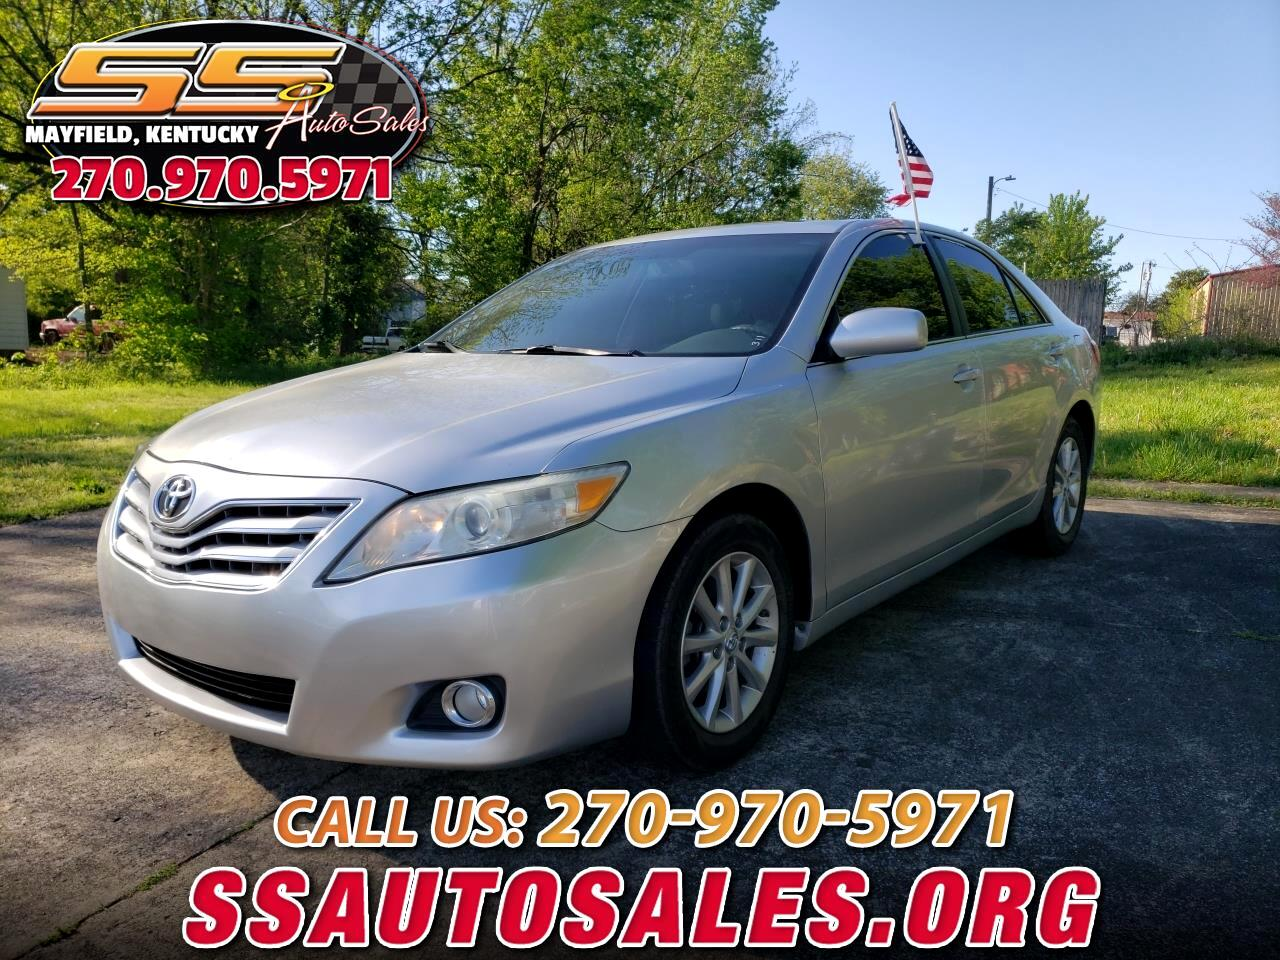 2011 Toyota Camry 2014.5 4dr Sdn I4 Auto XLE (Natl)